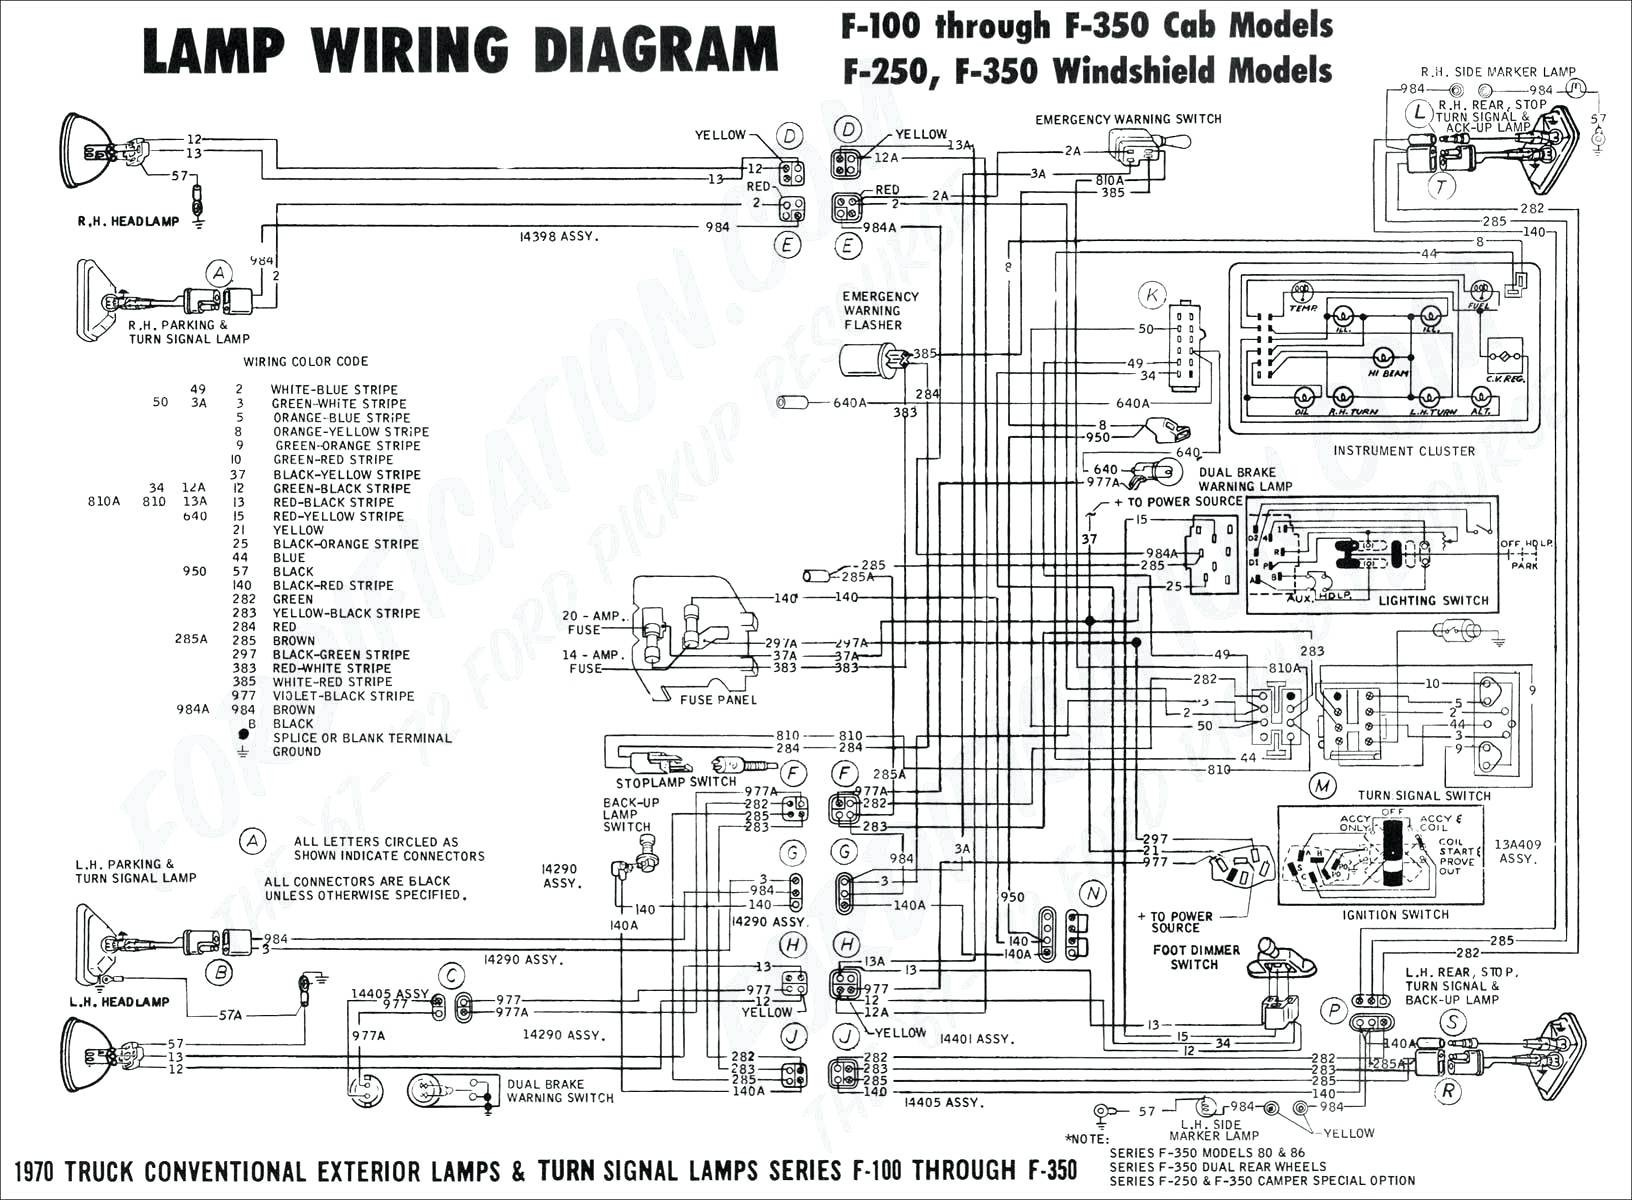 1998 Nissan Maxima Engine Diagram 1995 Nissan Maxima Engine Diagram Experts Wiring Diagram •